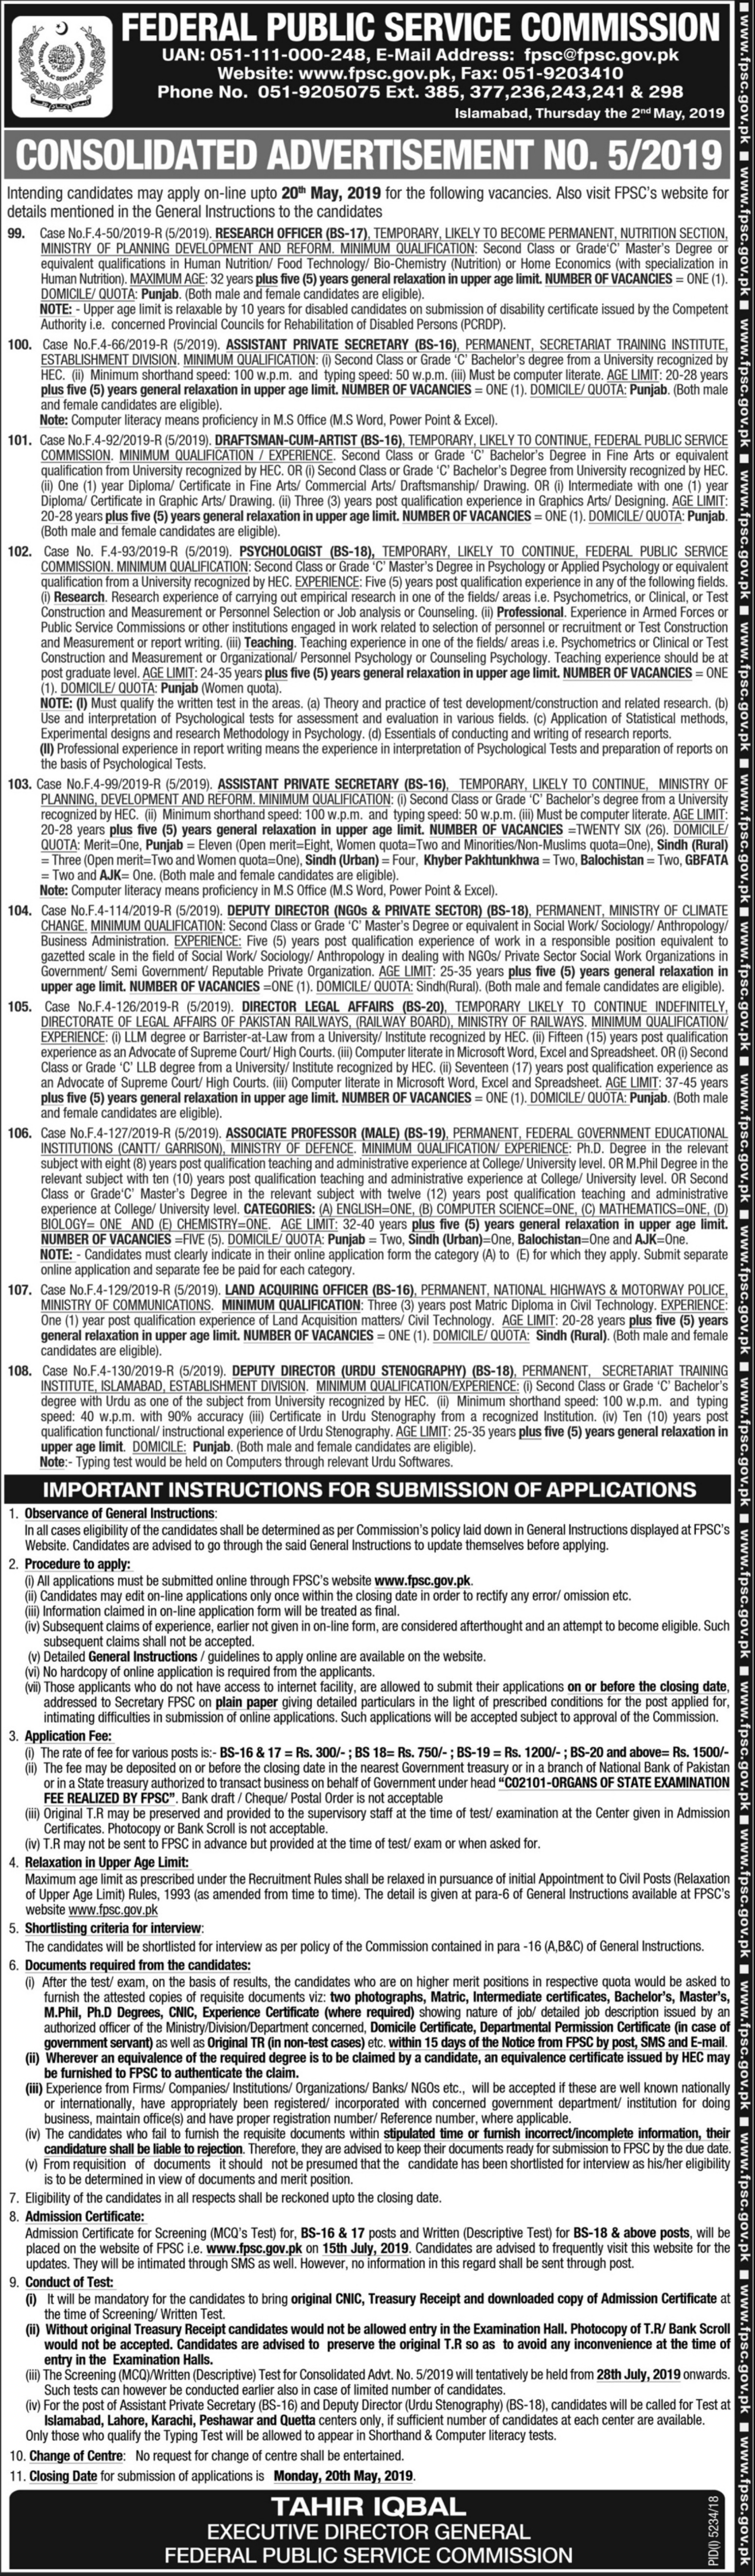 Federal Public Service Commission FPSC Jobs 2019 Latest Advertisement